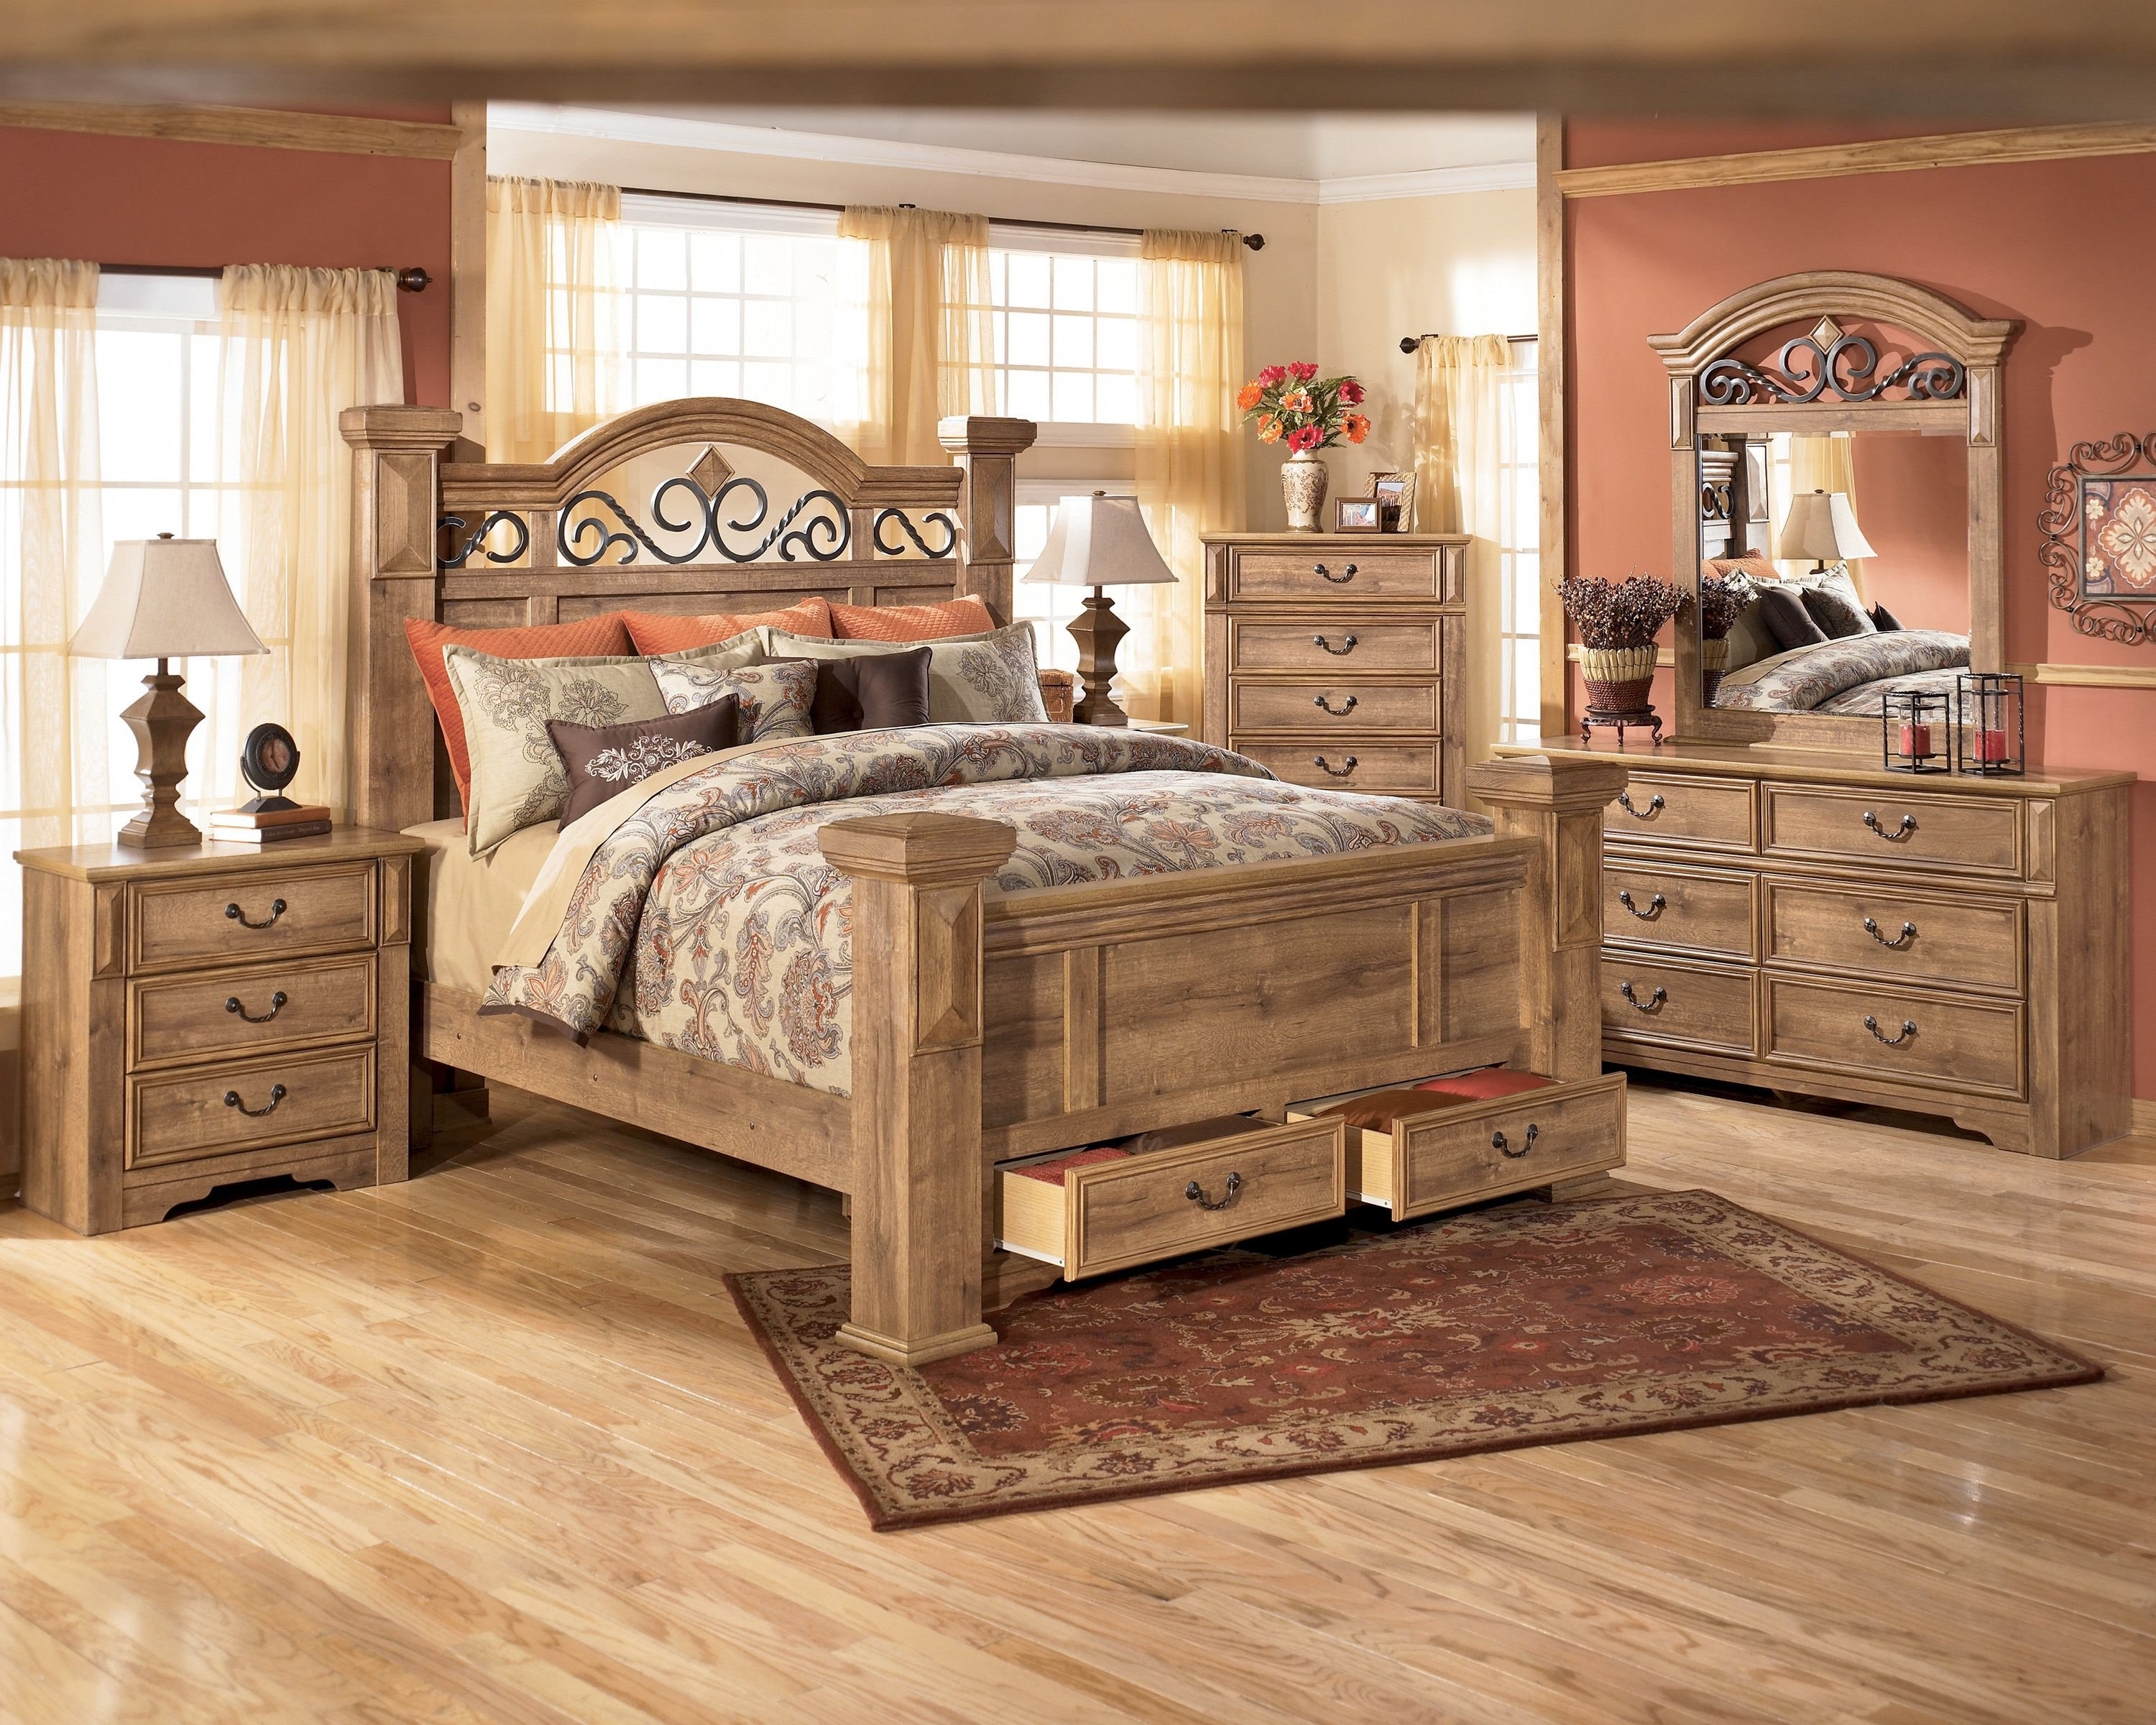 Queen Poster Bedroom Set Inspirational Awesome Awesome Full Size Bed Set 89 Home Decorating